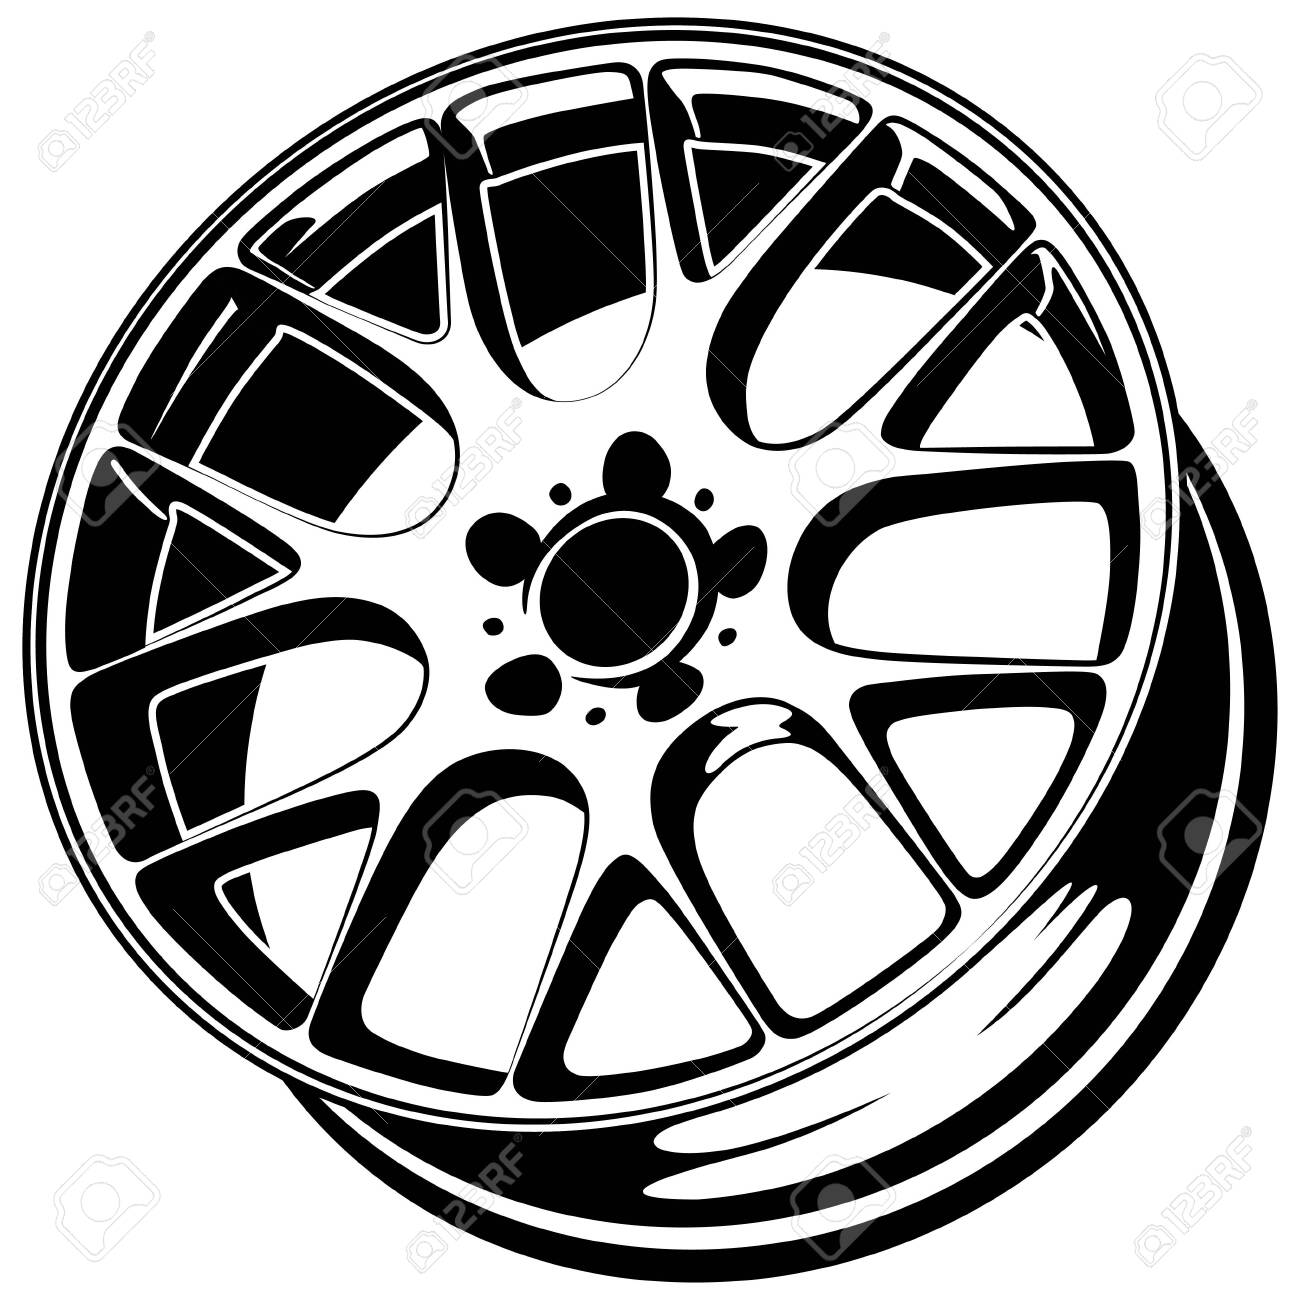 Car Wheel Rim Vector Silhouette Icon Logo Monochrome Color Royalty Free Cliparts Vectors And Stock Illustration Image 135924285